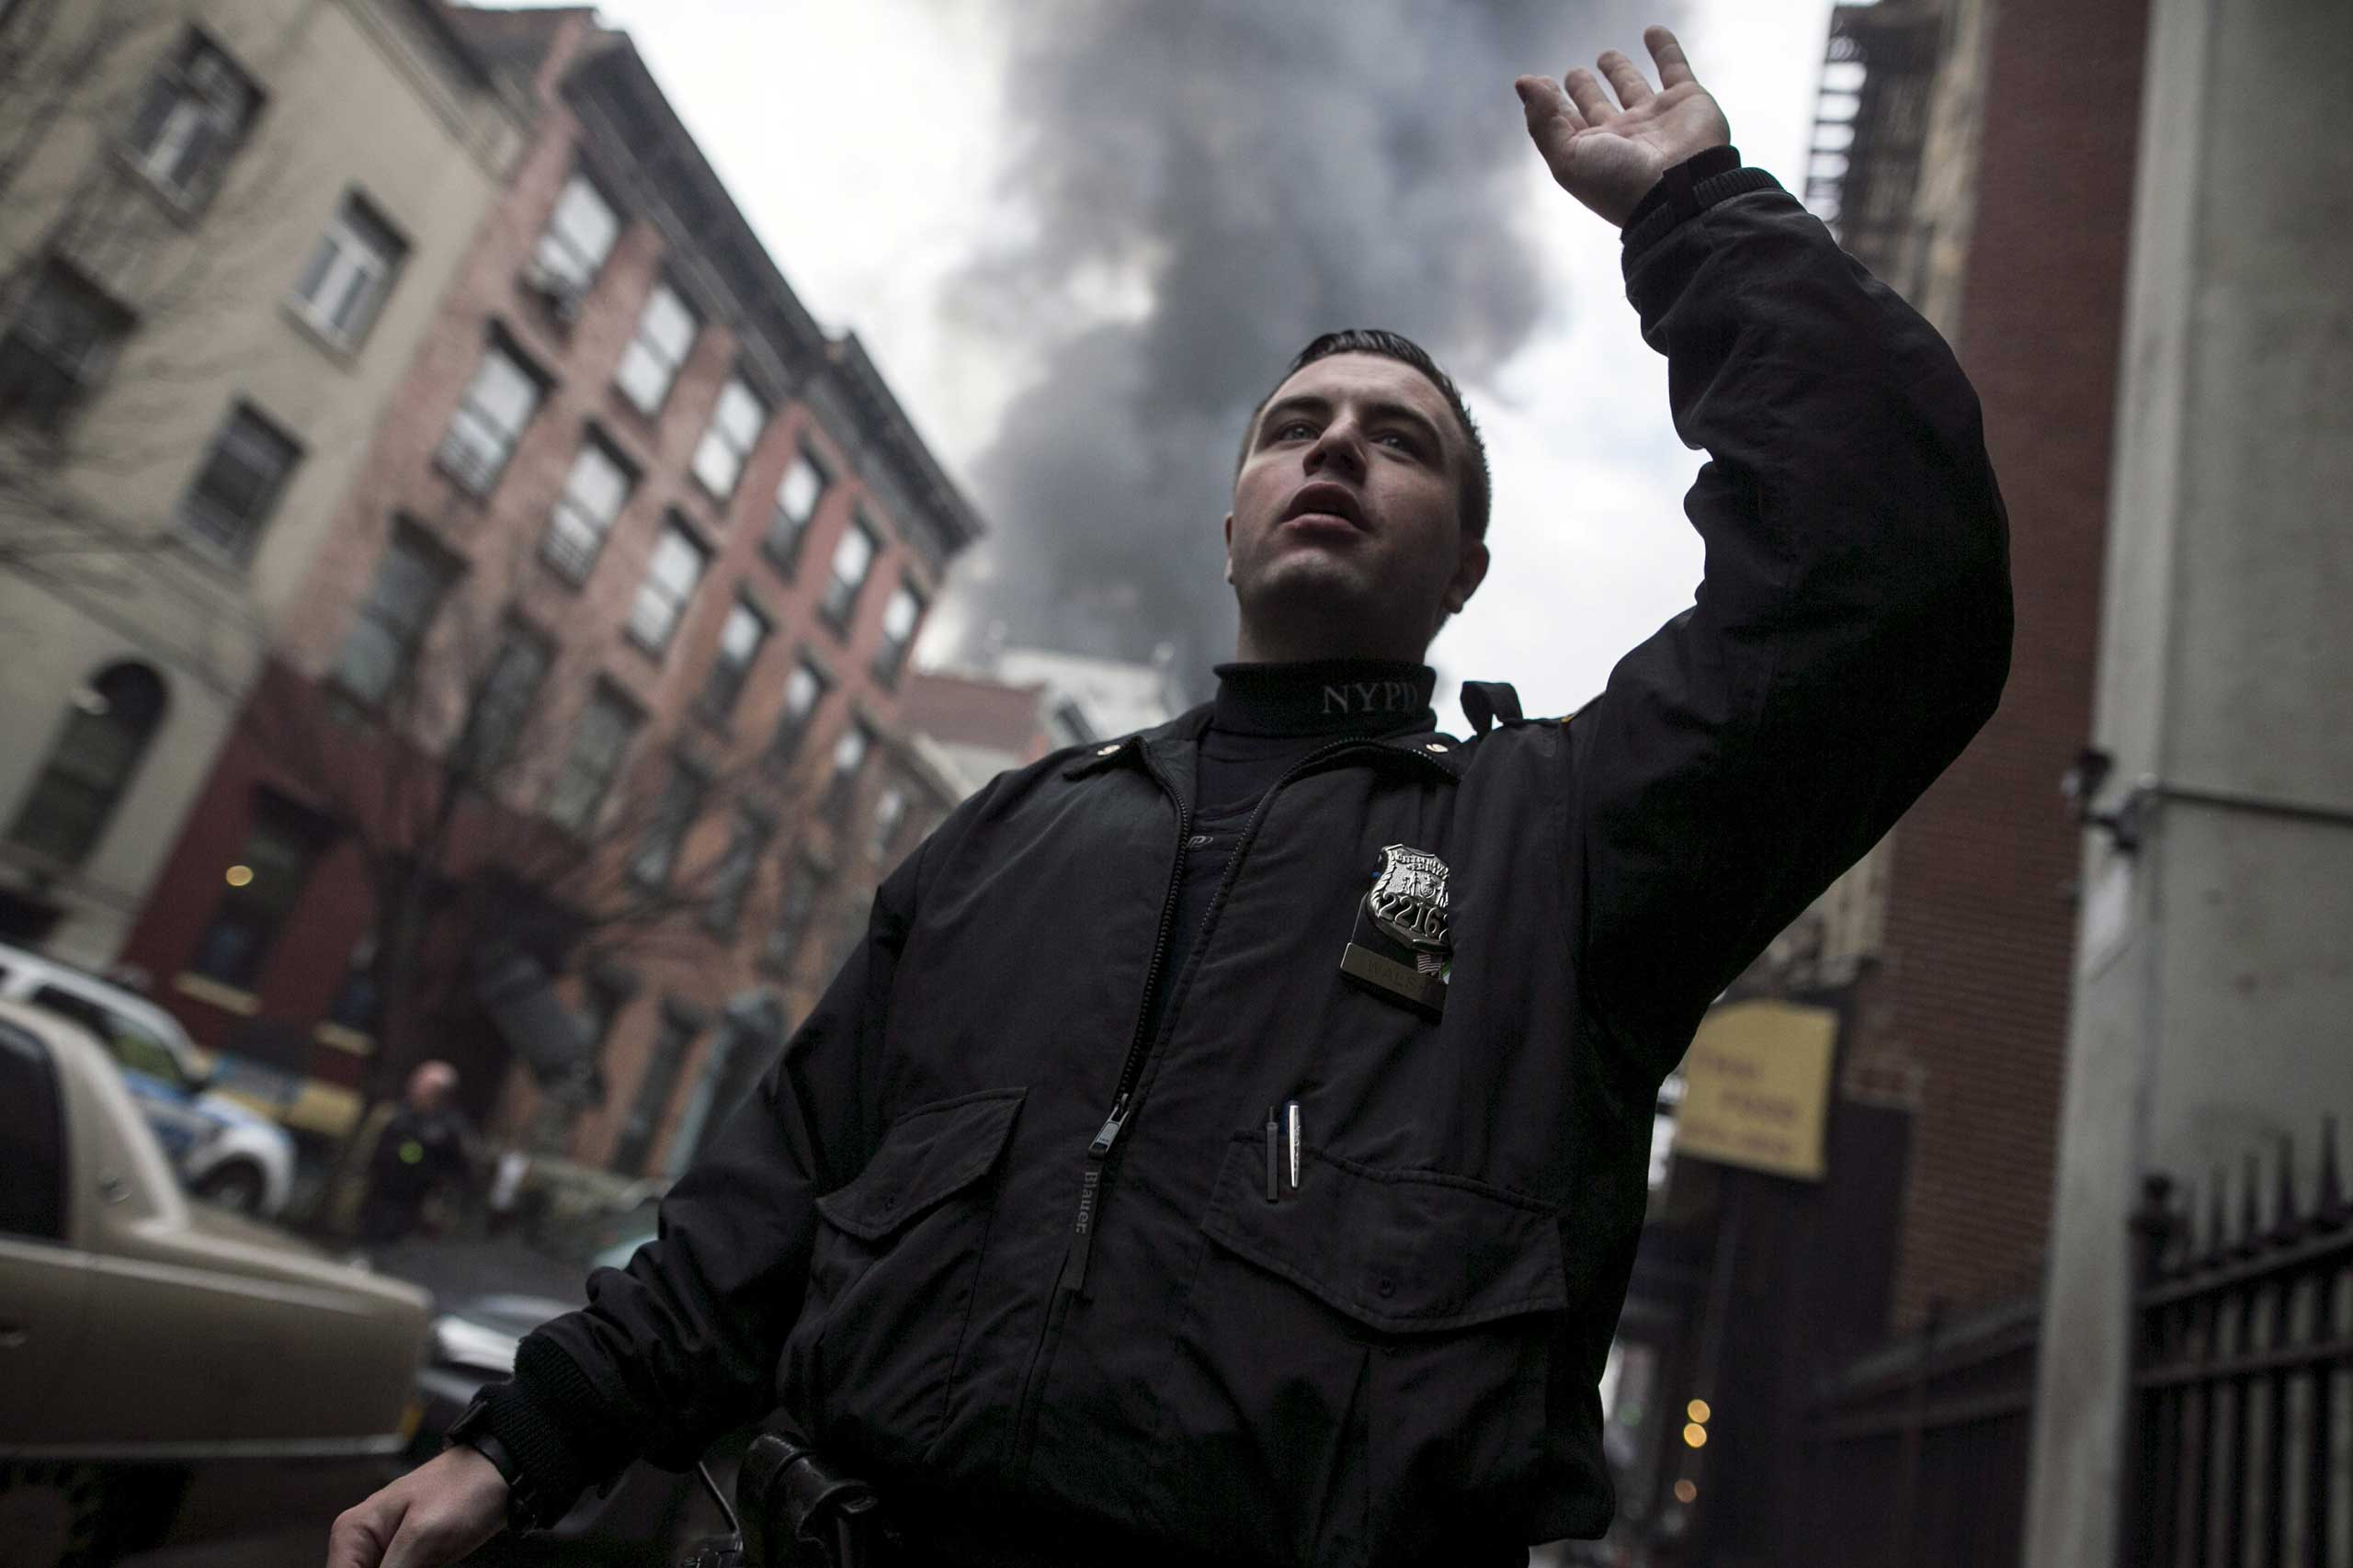 A New York Police Department (NYPD) officers signals residents away from the site of a building fire in the East Village neighborhood of New York City on March 26, 2015.